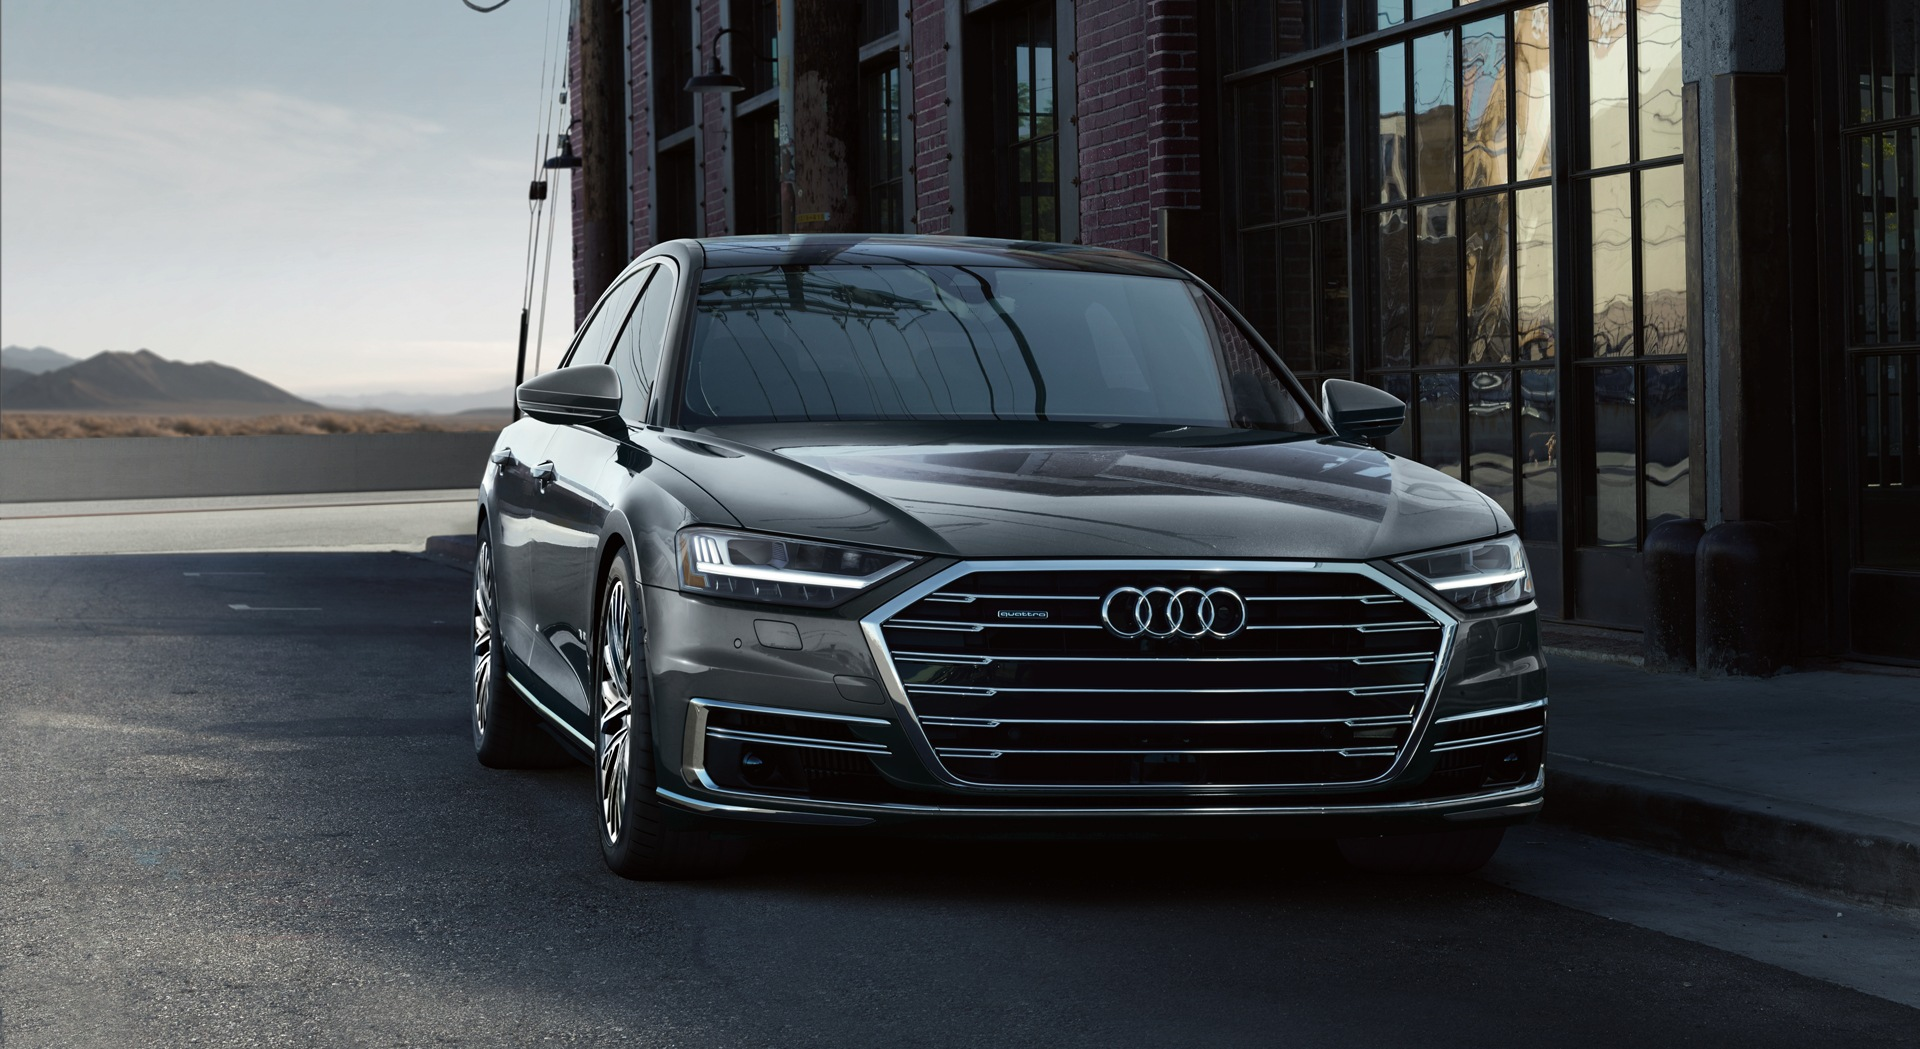 2019 Audi A8: Elevated luxury at its finest